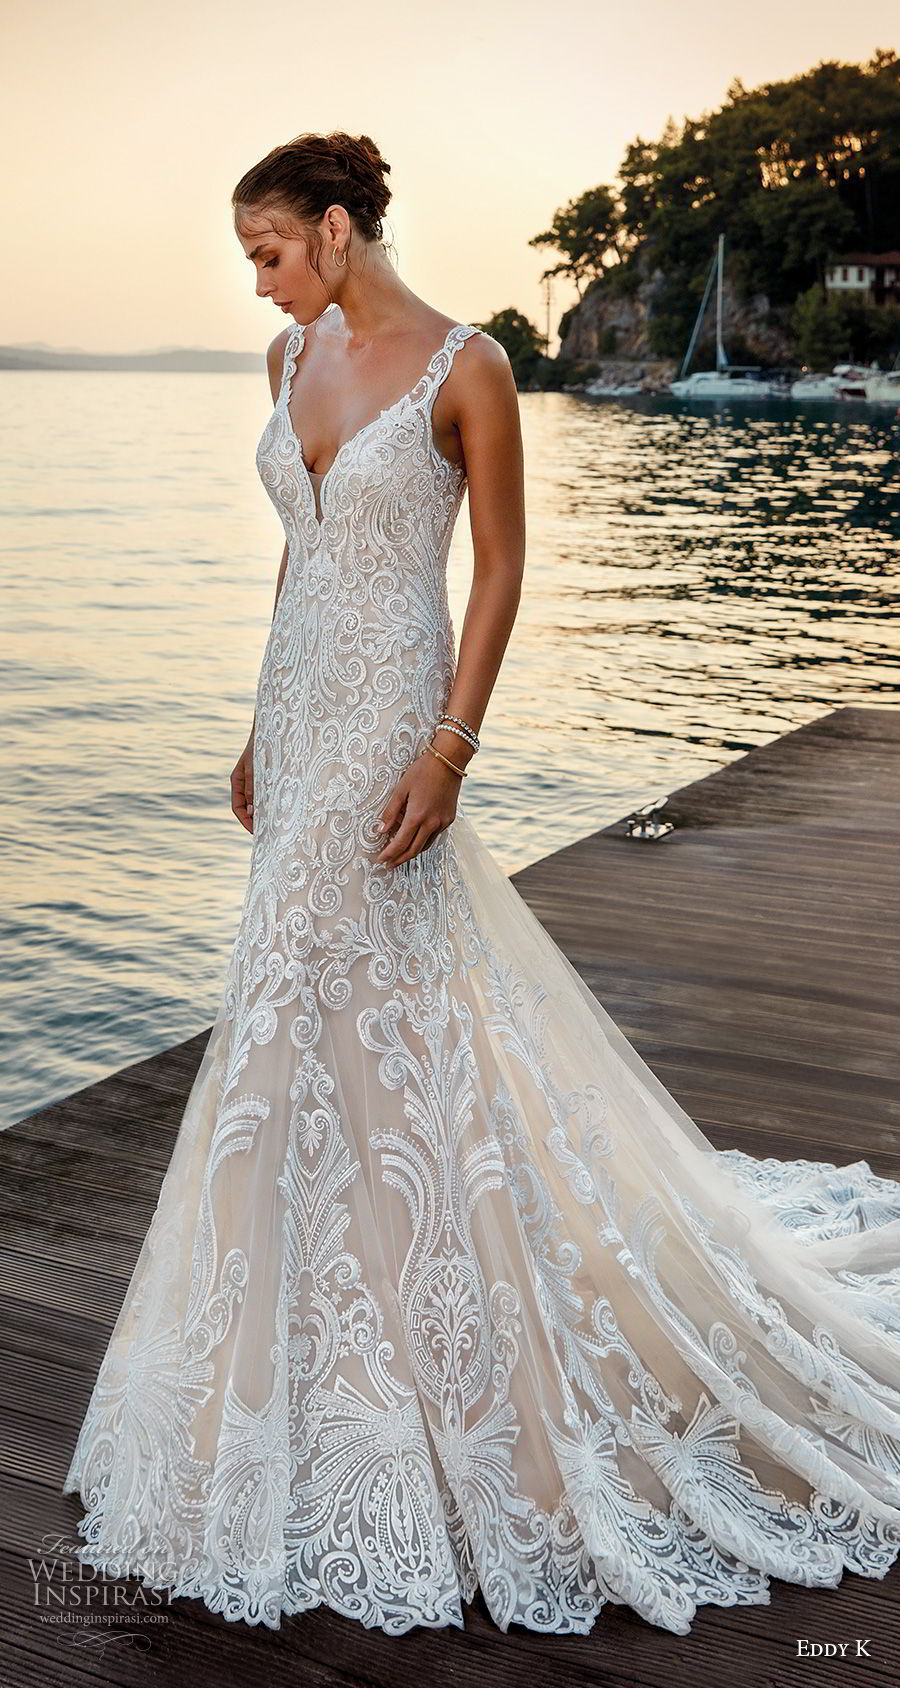 eddy k 2018 bridal sleeveless with strap v neck full embellishment elegant trumpet wedding dress sheer lace back chapel train (27) mv